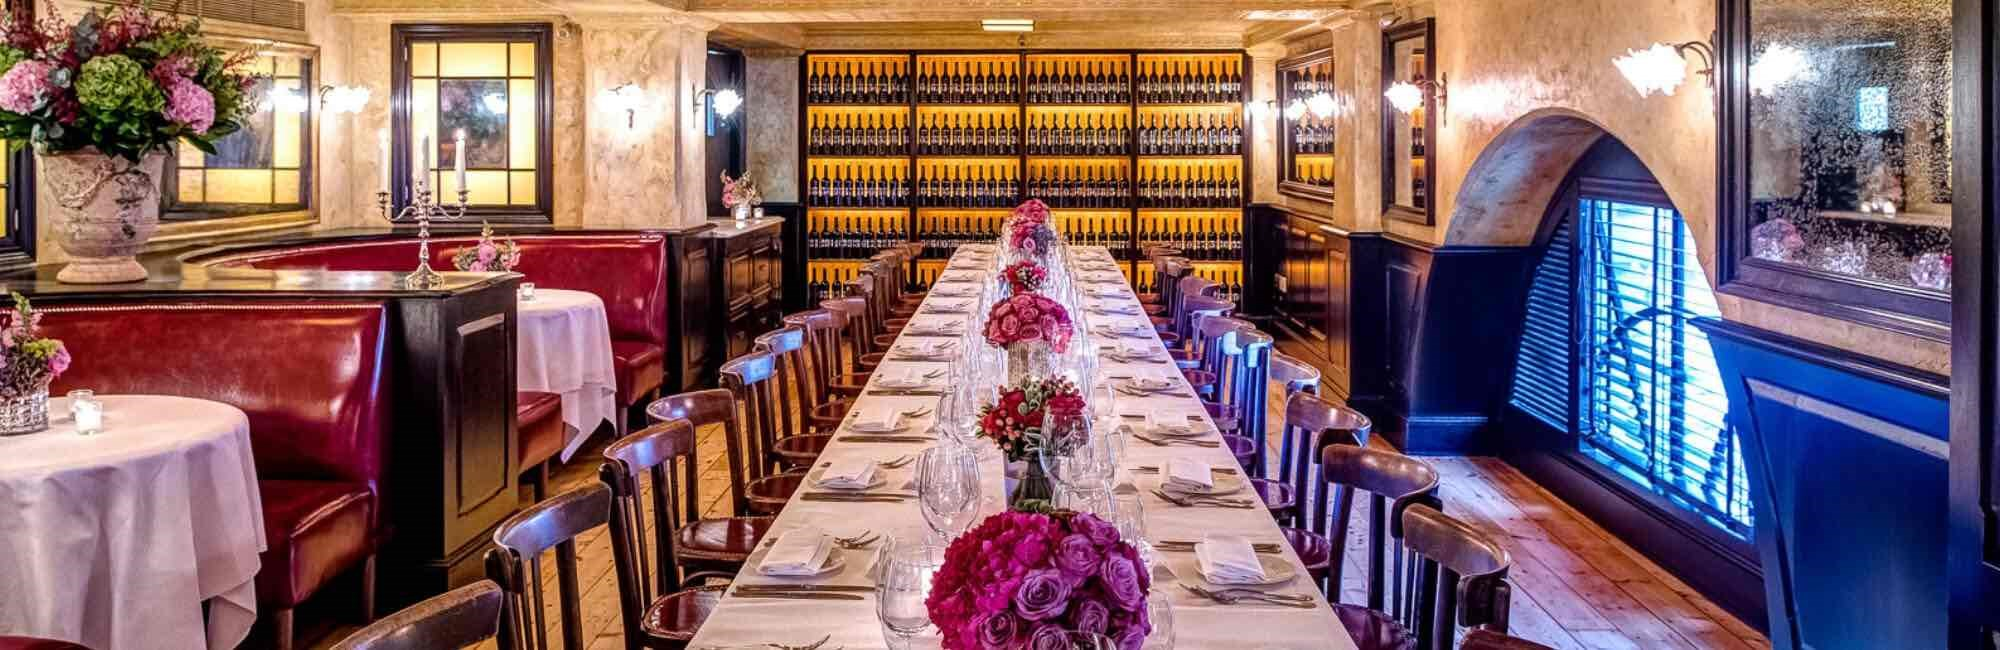 Long table set for large private dining party in Le Grand Salon